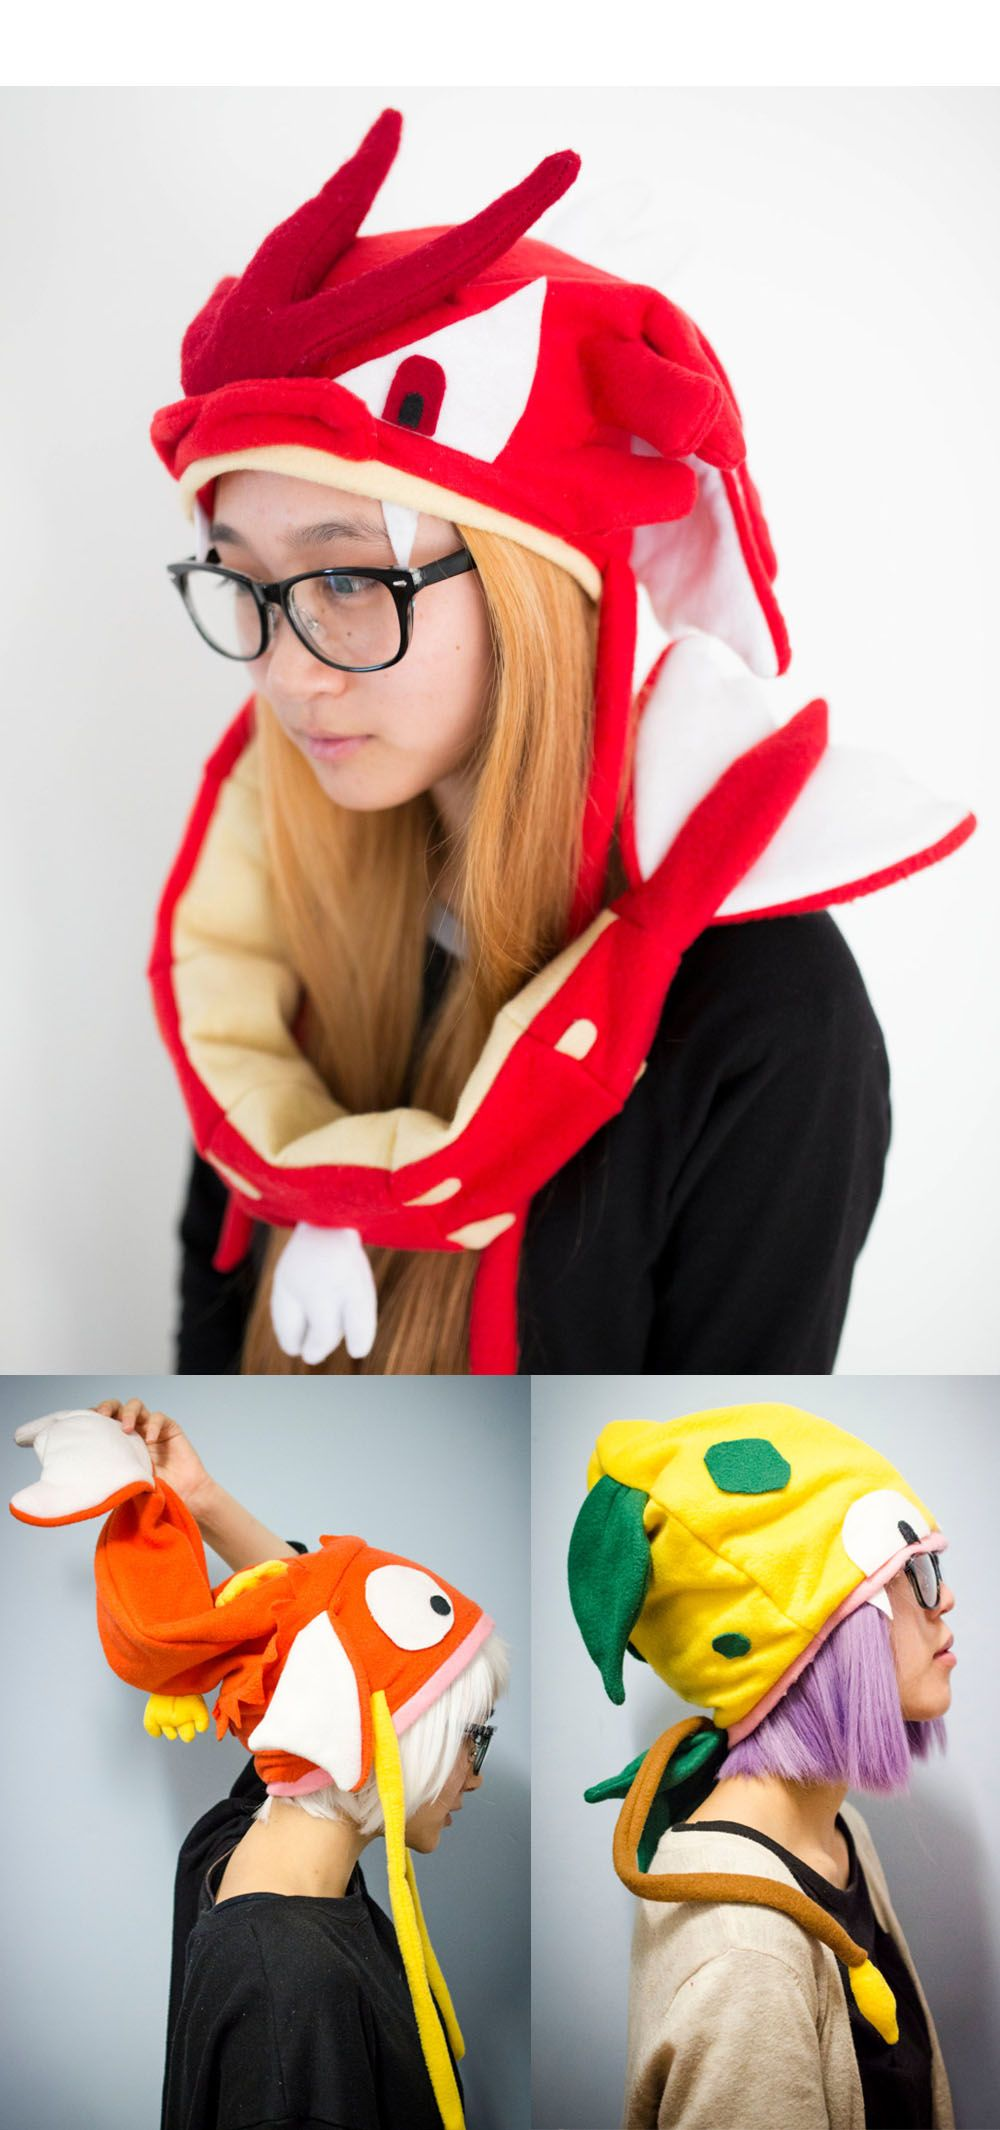 Oh my gosh this would be so much better than it looks because a hat with a  long enough tail could douBLE AS A SCARF THATD BE SO COOL 5b11b552d95